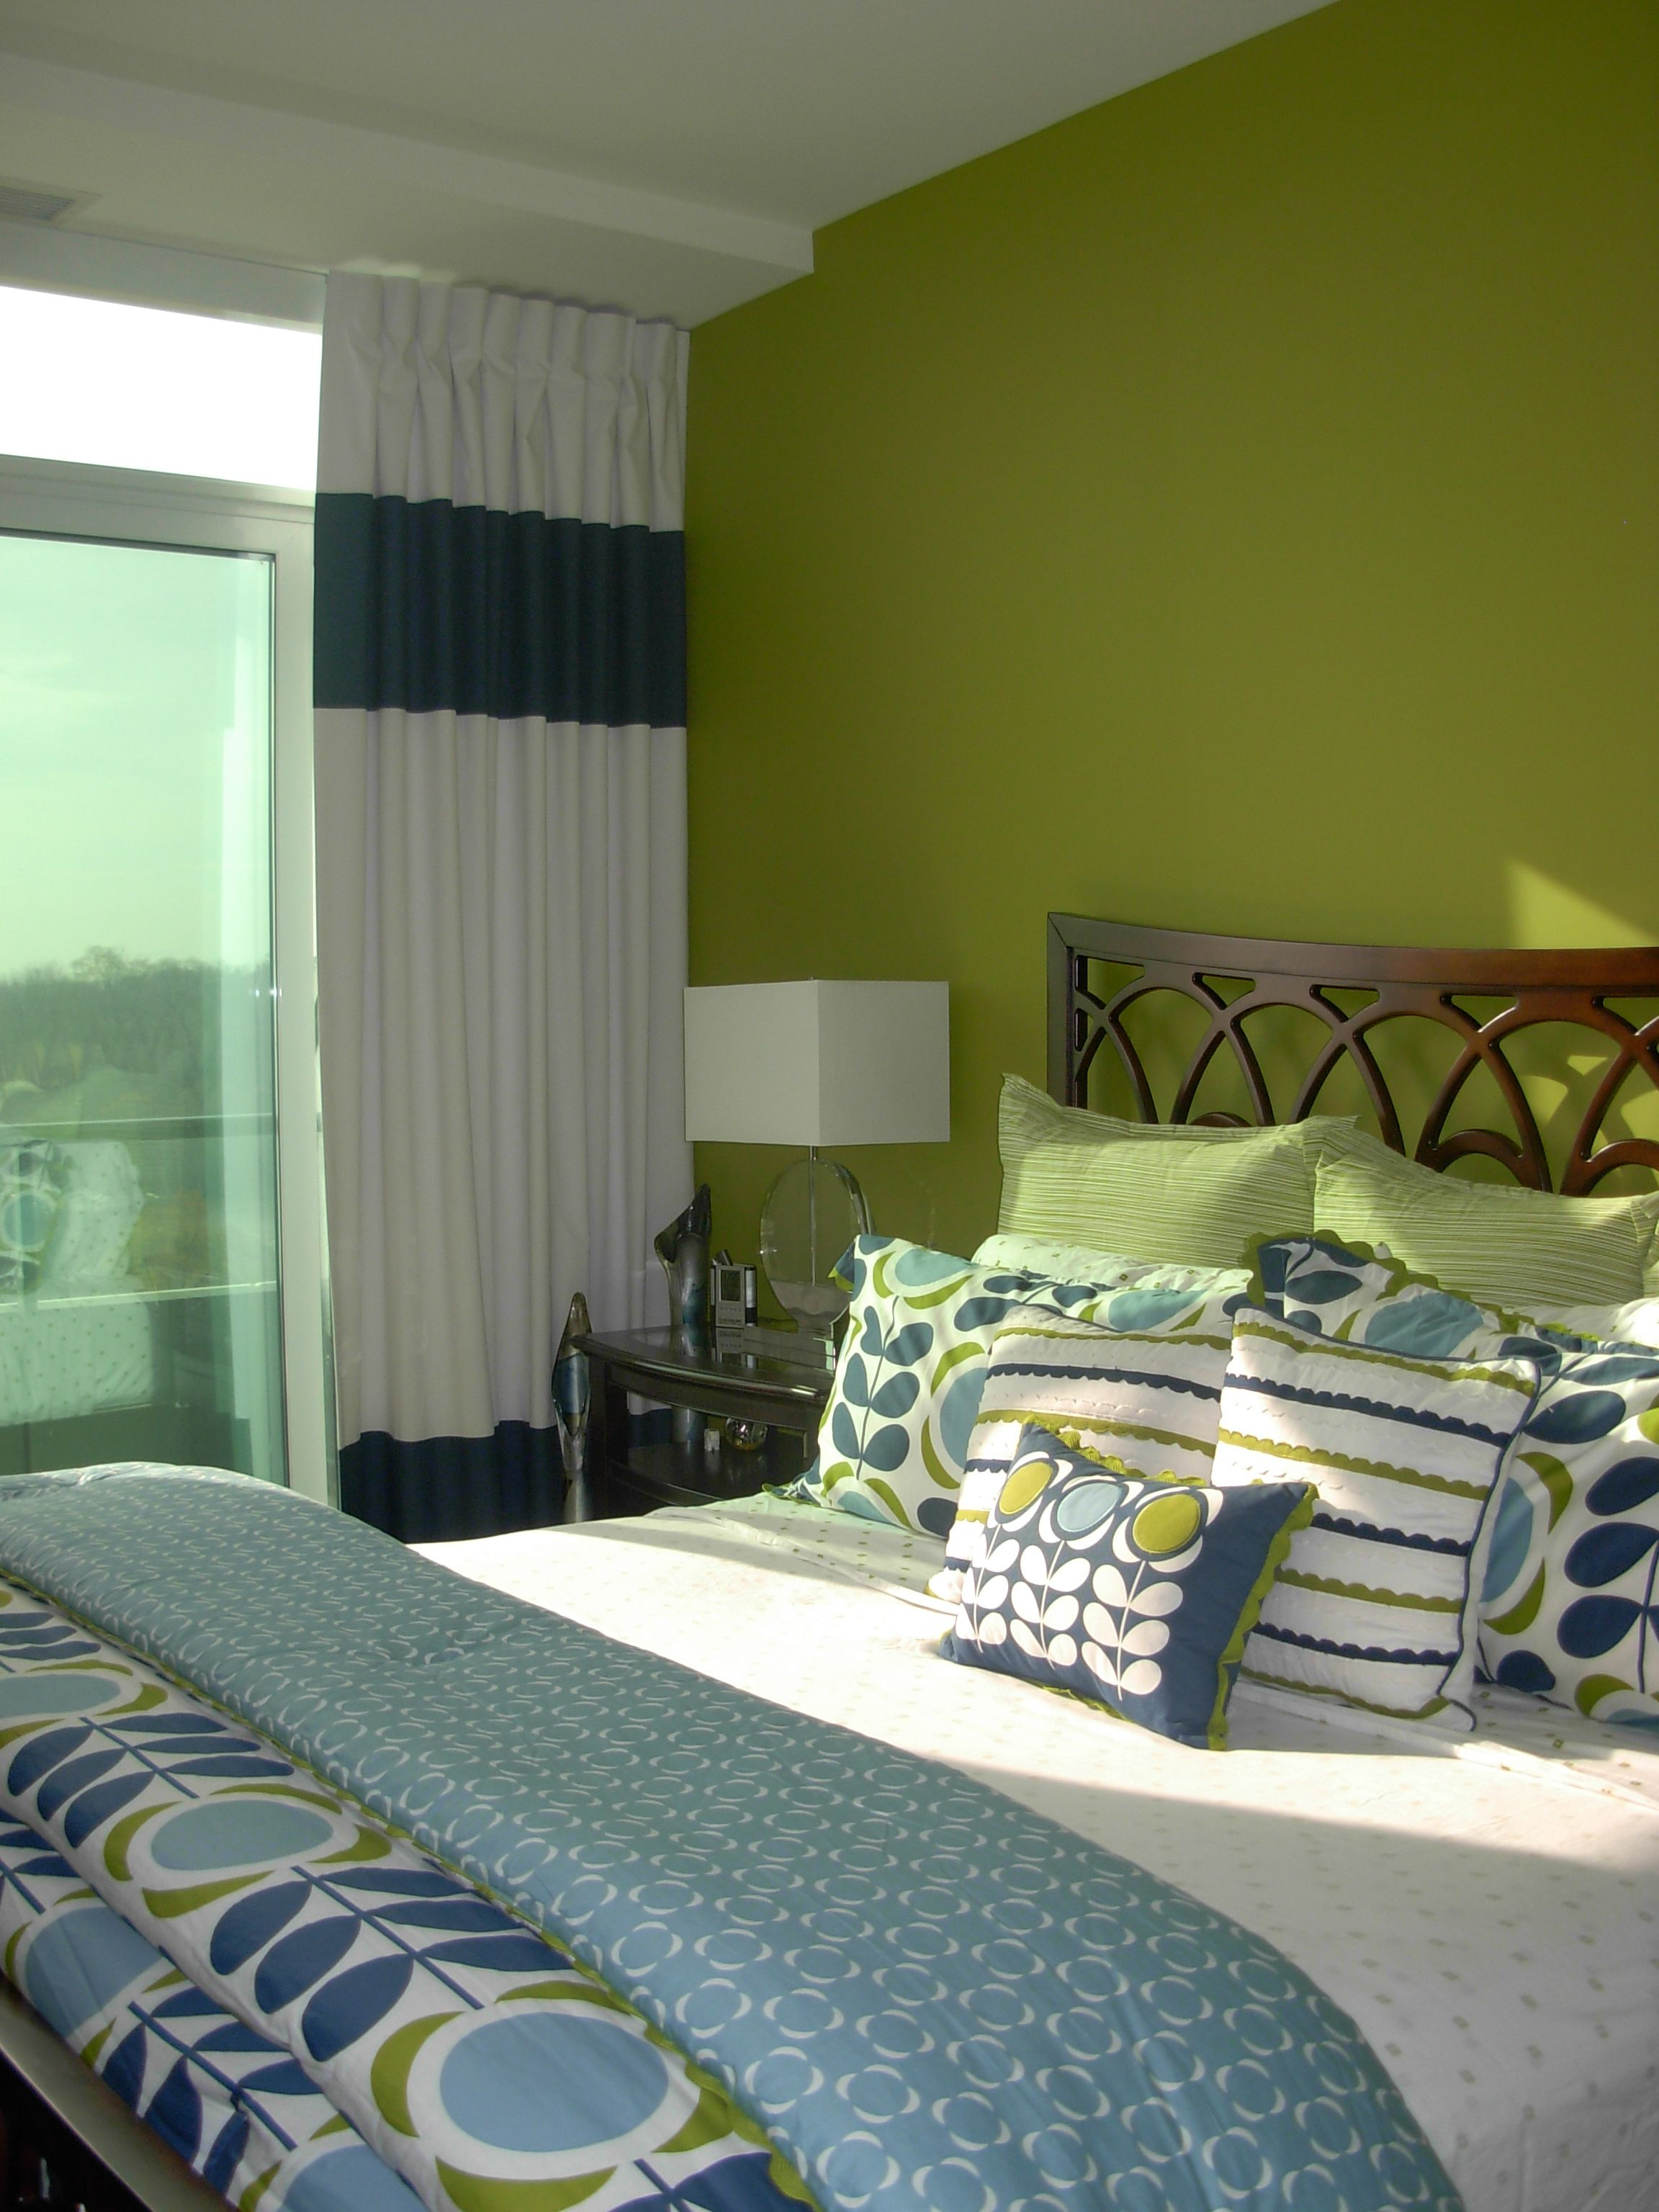 ShadesofHome Drapery.ca, White with navy banding and coordinating bedding